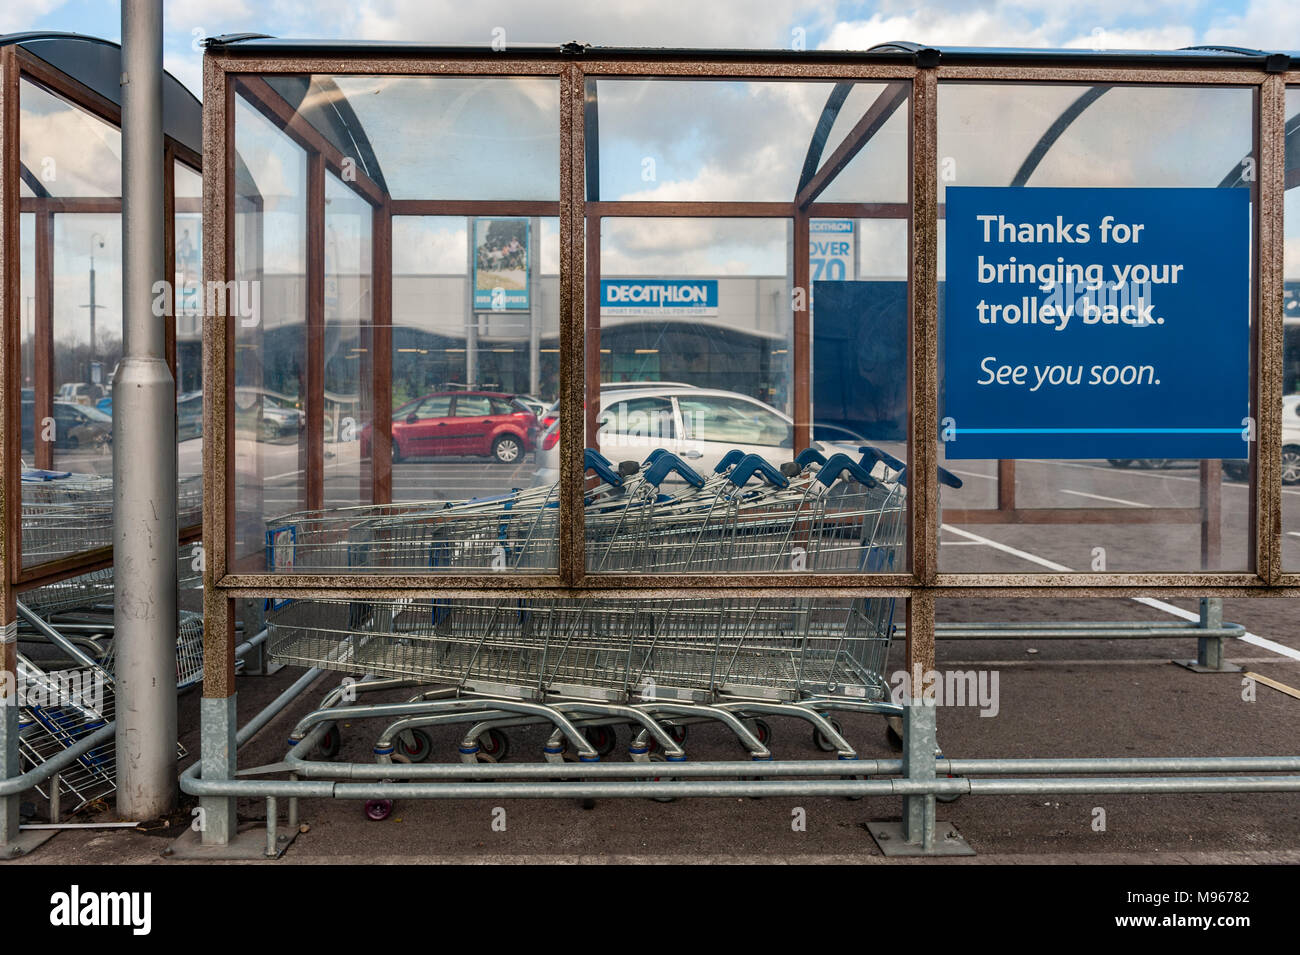 Trolley Park at Arena Park Shopping Centre, Coventry, UK. - Stock Image